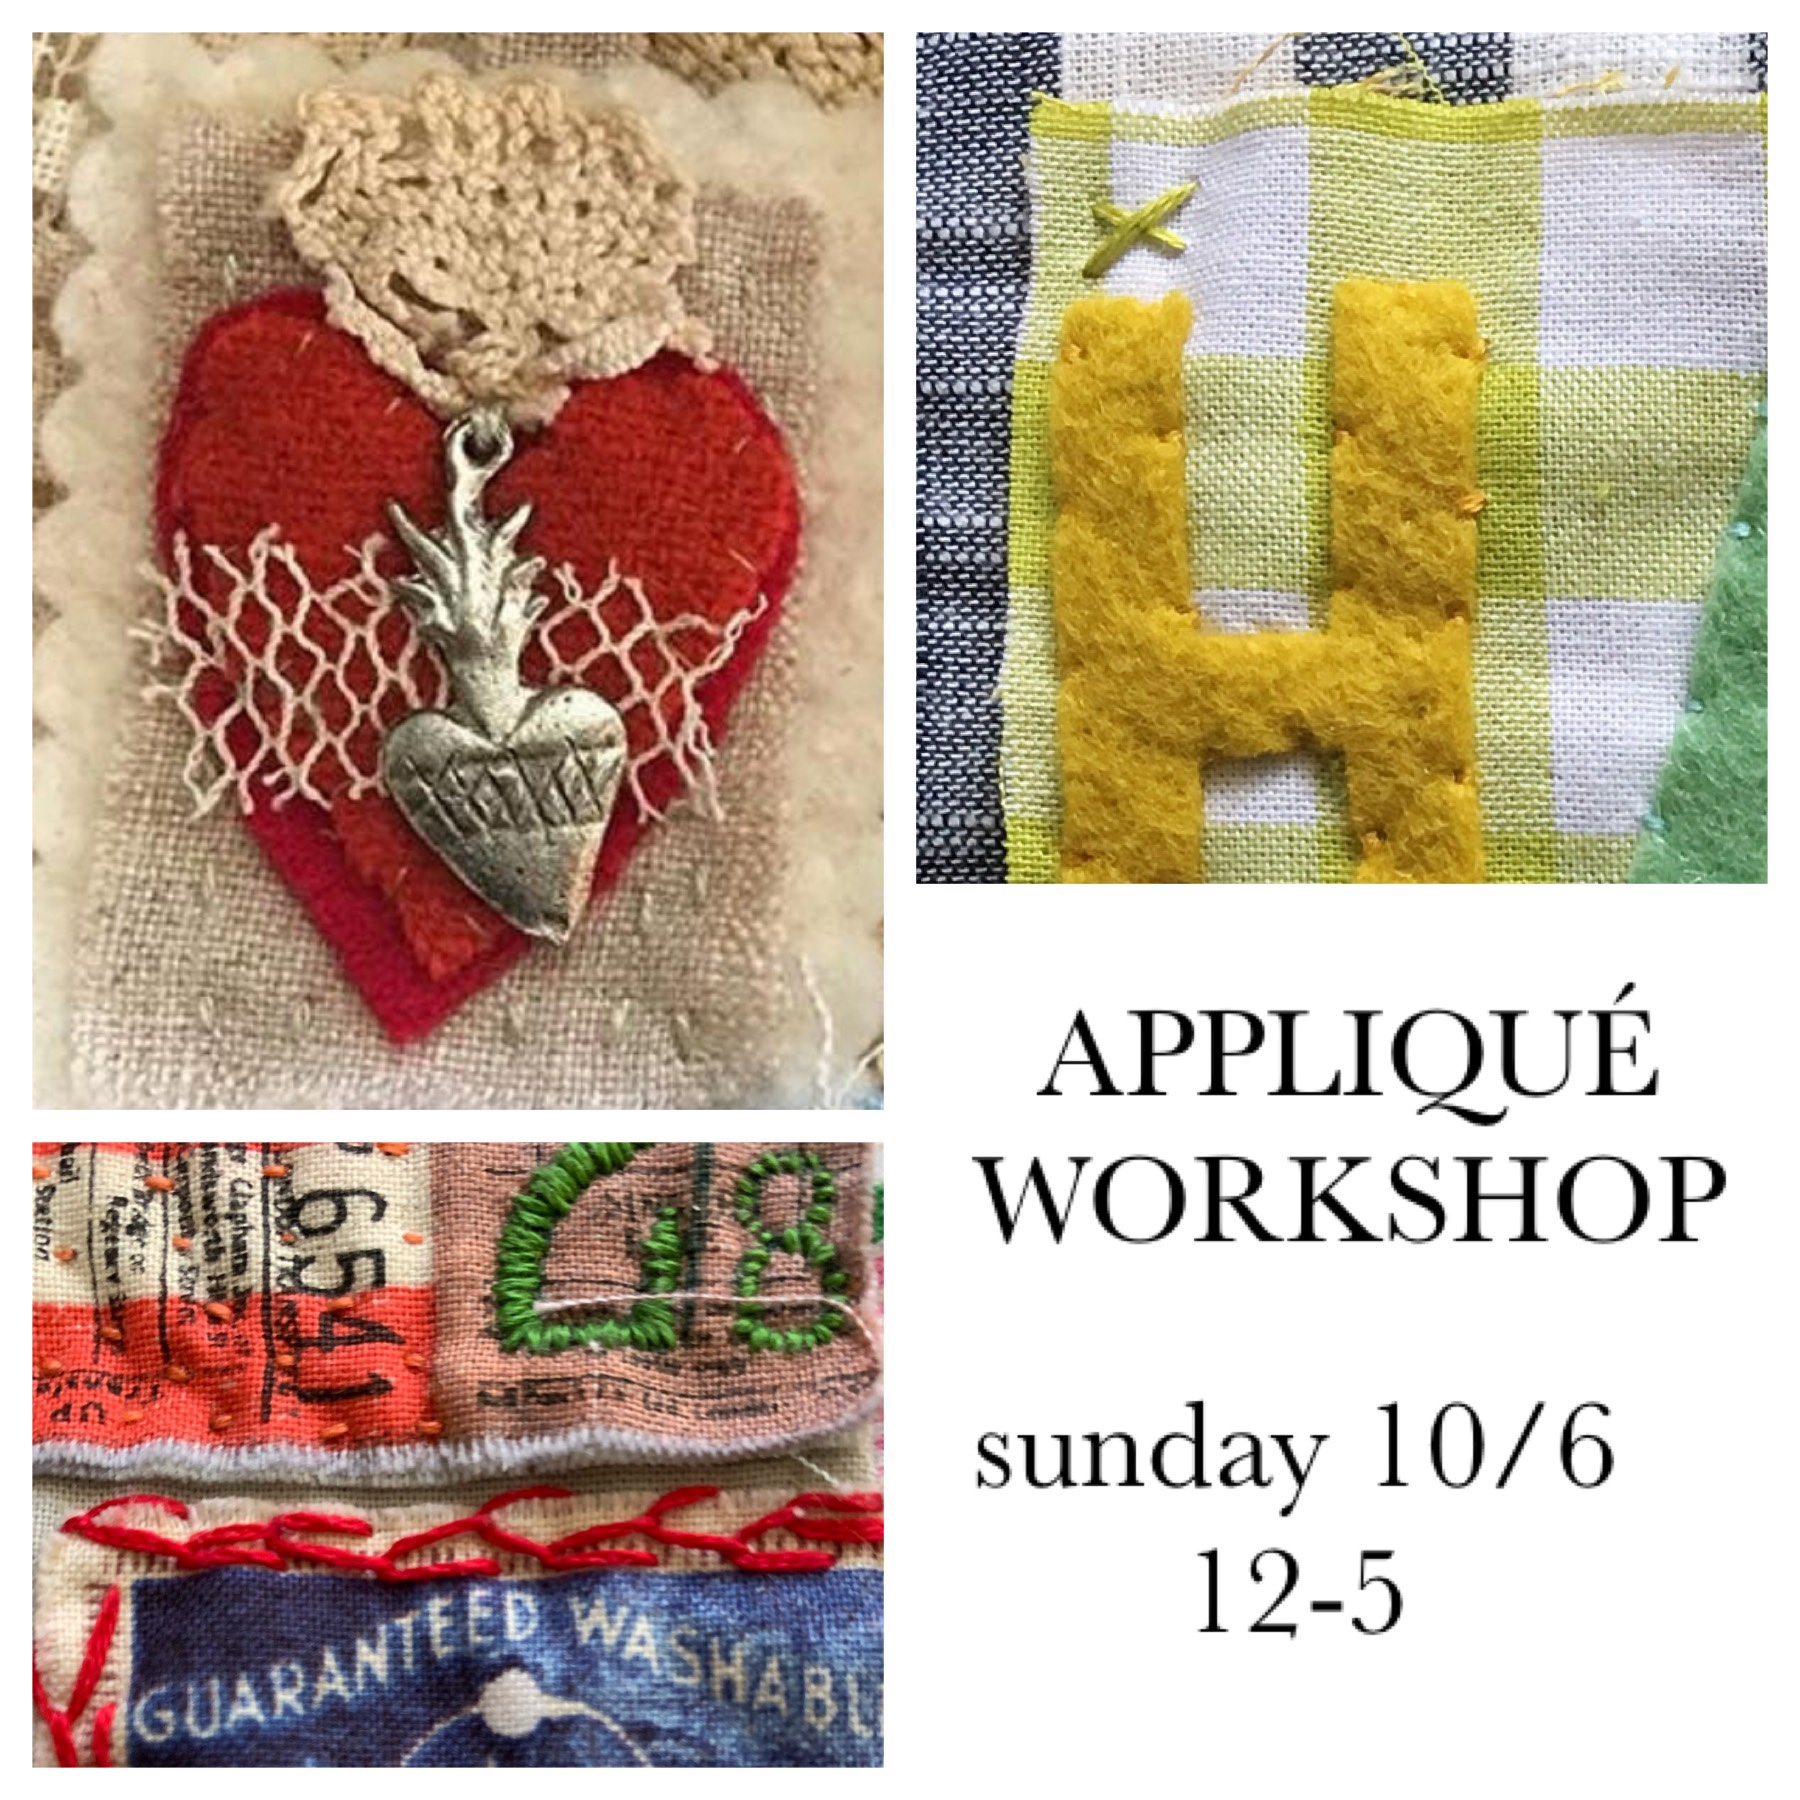 appliqué workshop$65.00 - all materials included but please bring embroidery scissors.learn how to appliqué using our favorite wool felt. we will also teach you how to add bits of fabric to your pieces using raw edge appliqué... including a charming milagros collage.